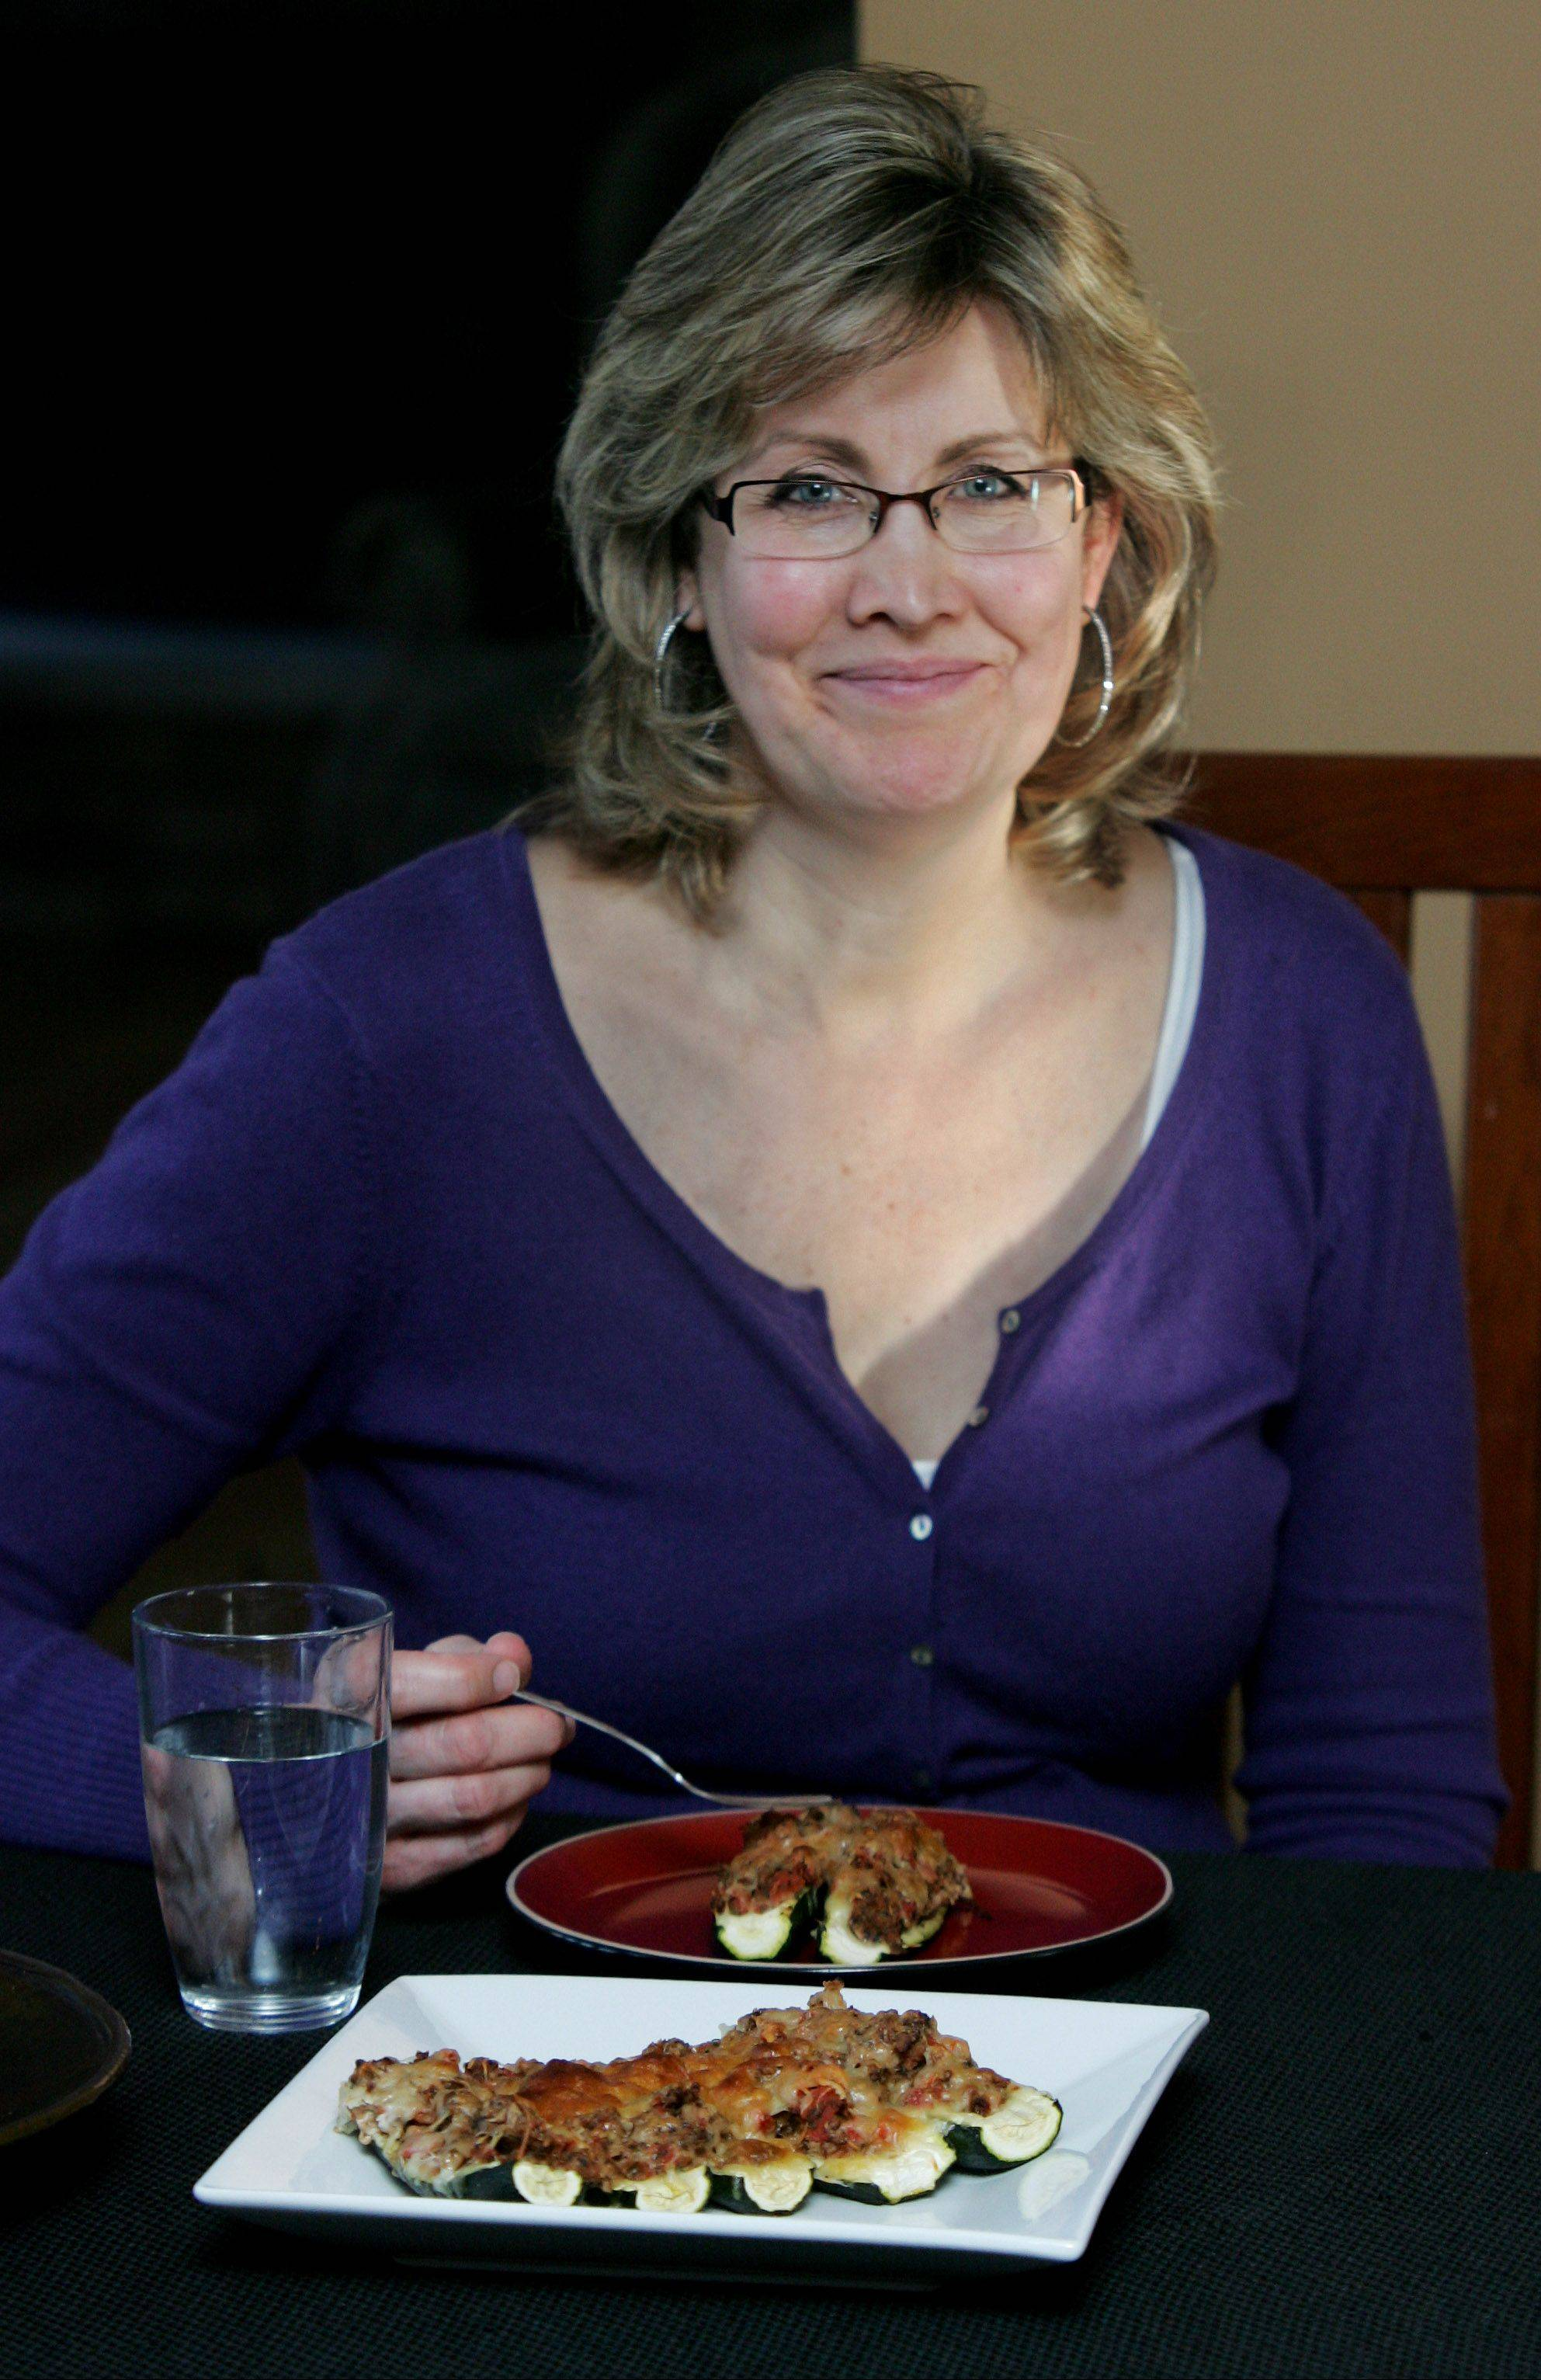 Crystal Maleski shares weekly menus and family-friendly recipes through her website, makedinnereasy.com.